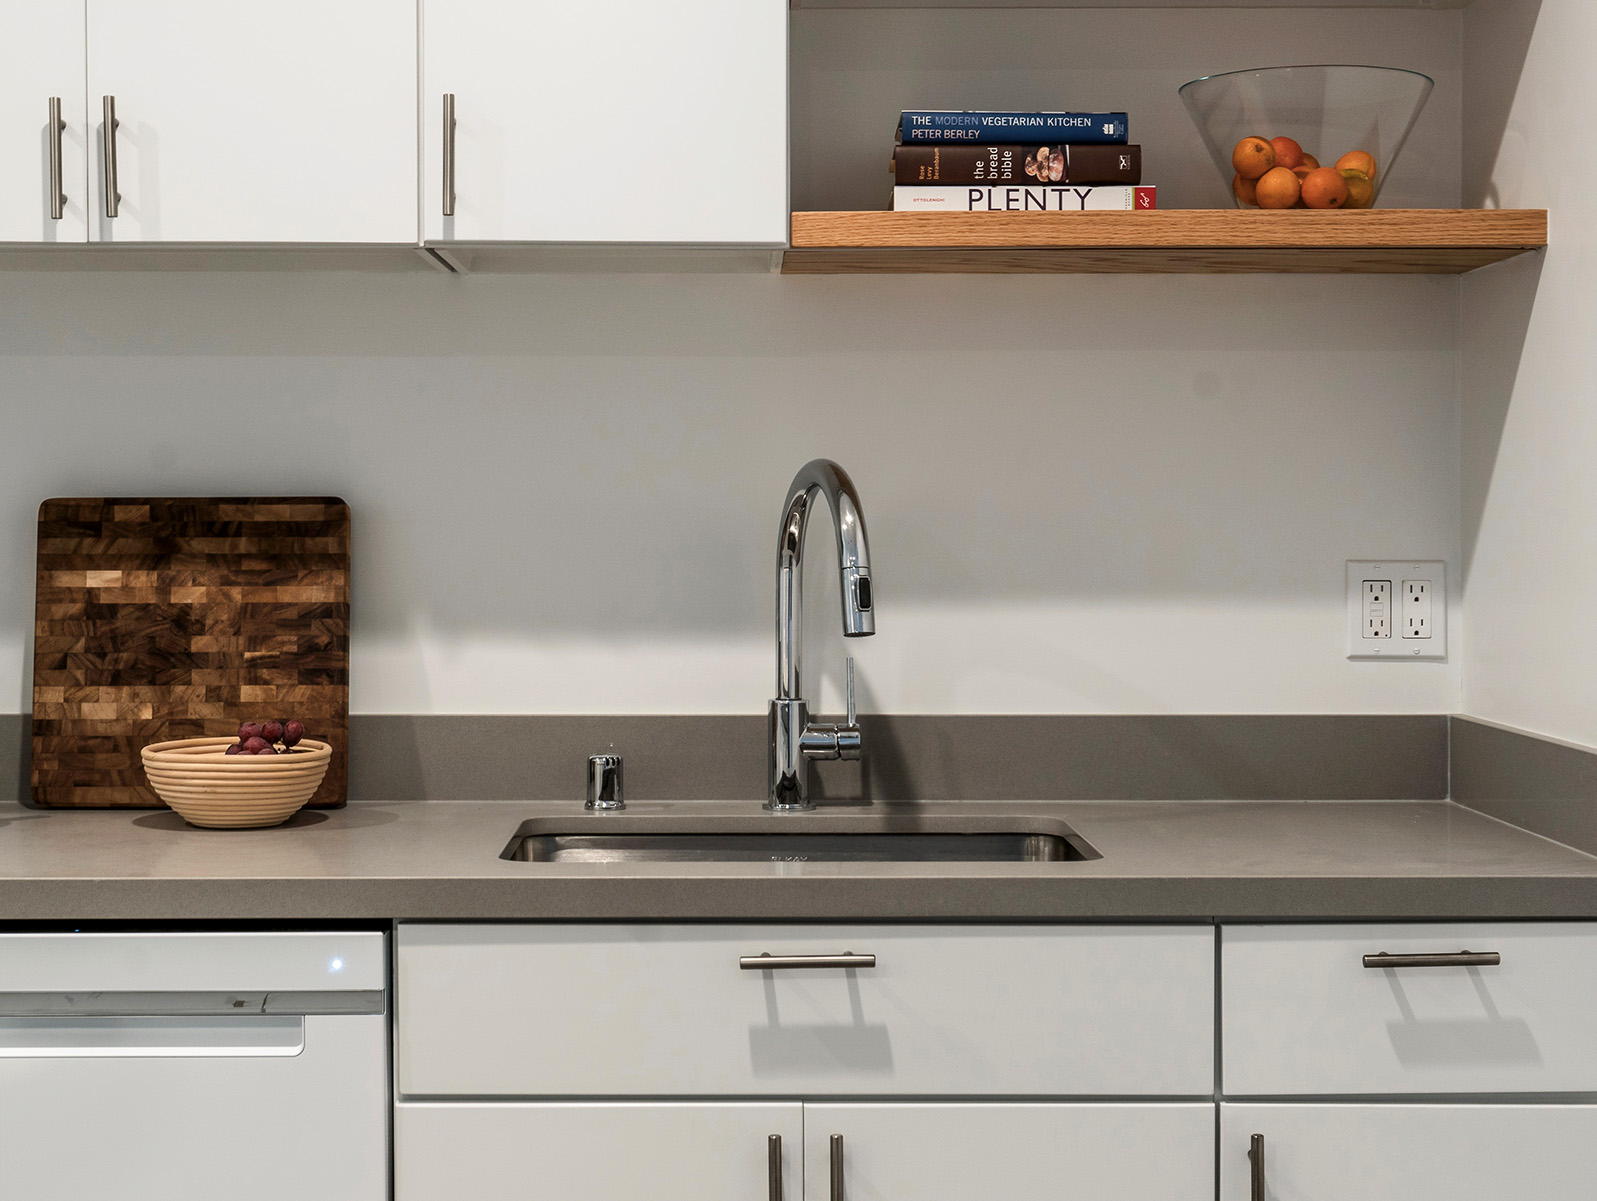 sanfrancisco_ADU_kitchen_closeup.jpg